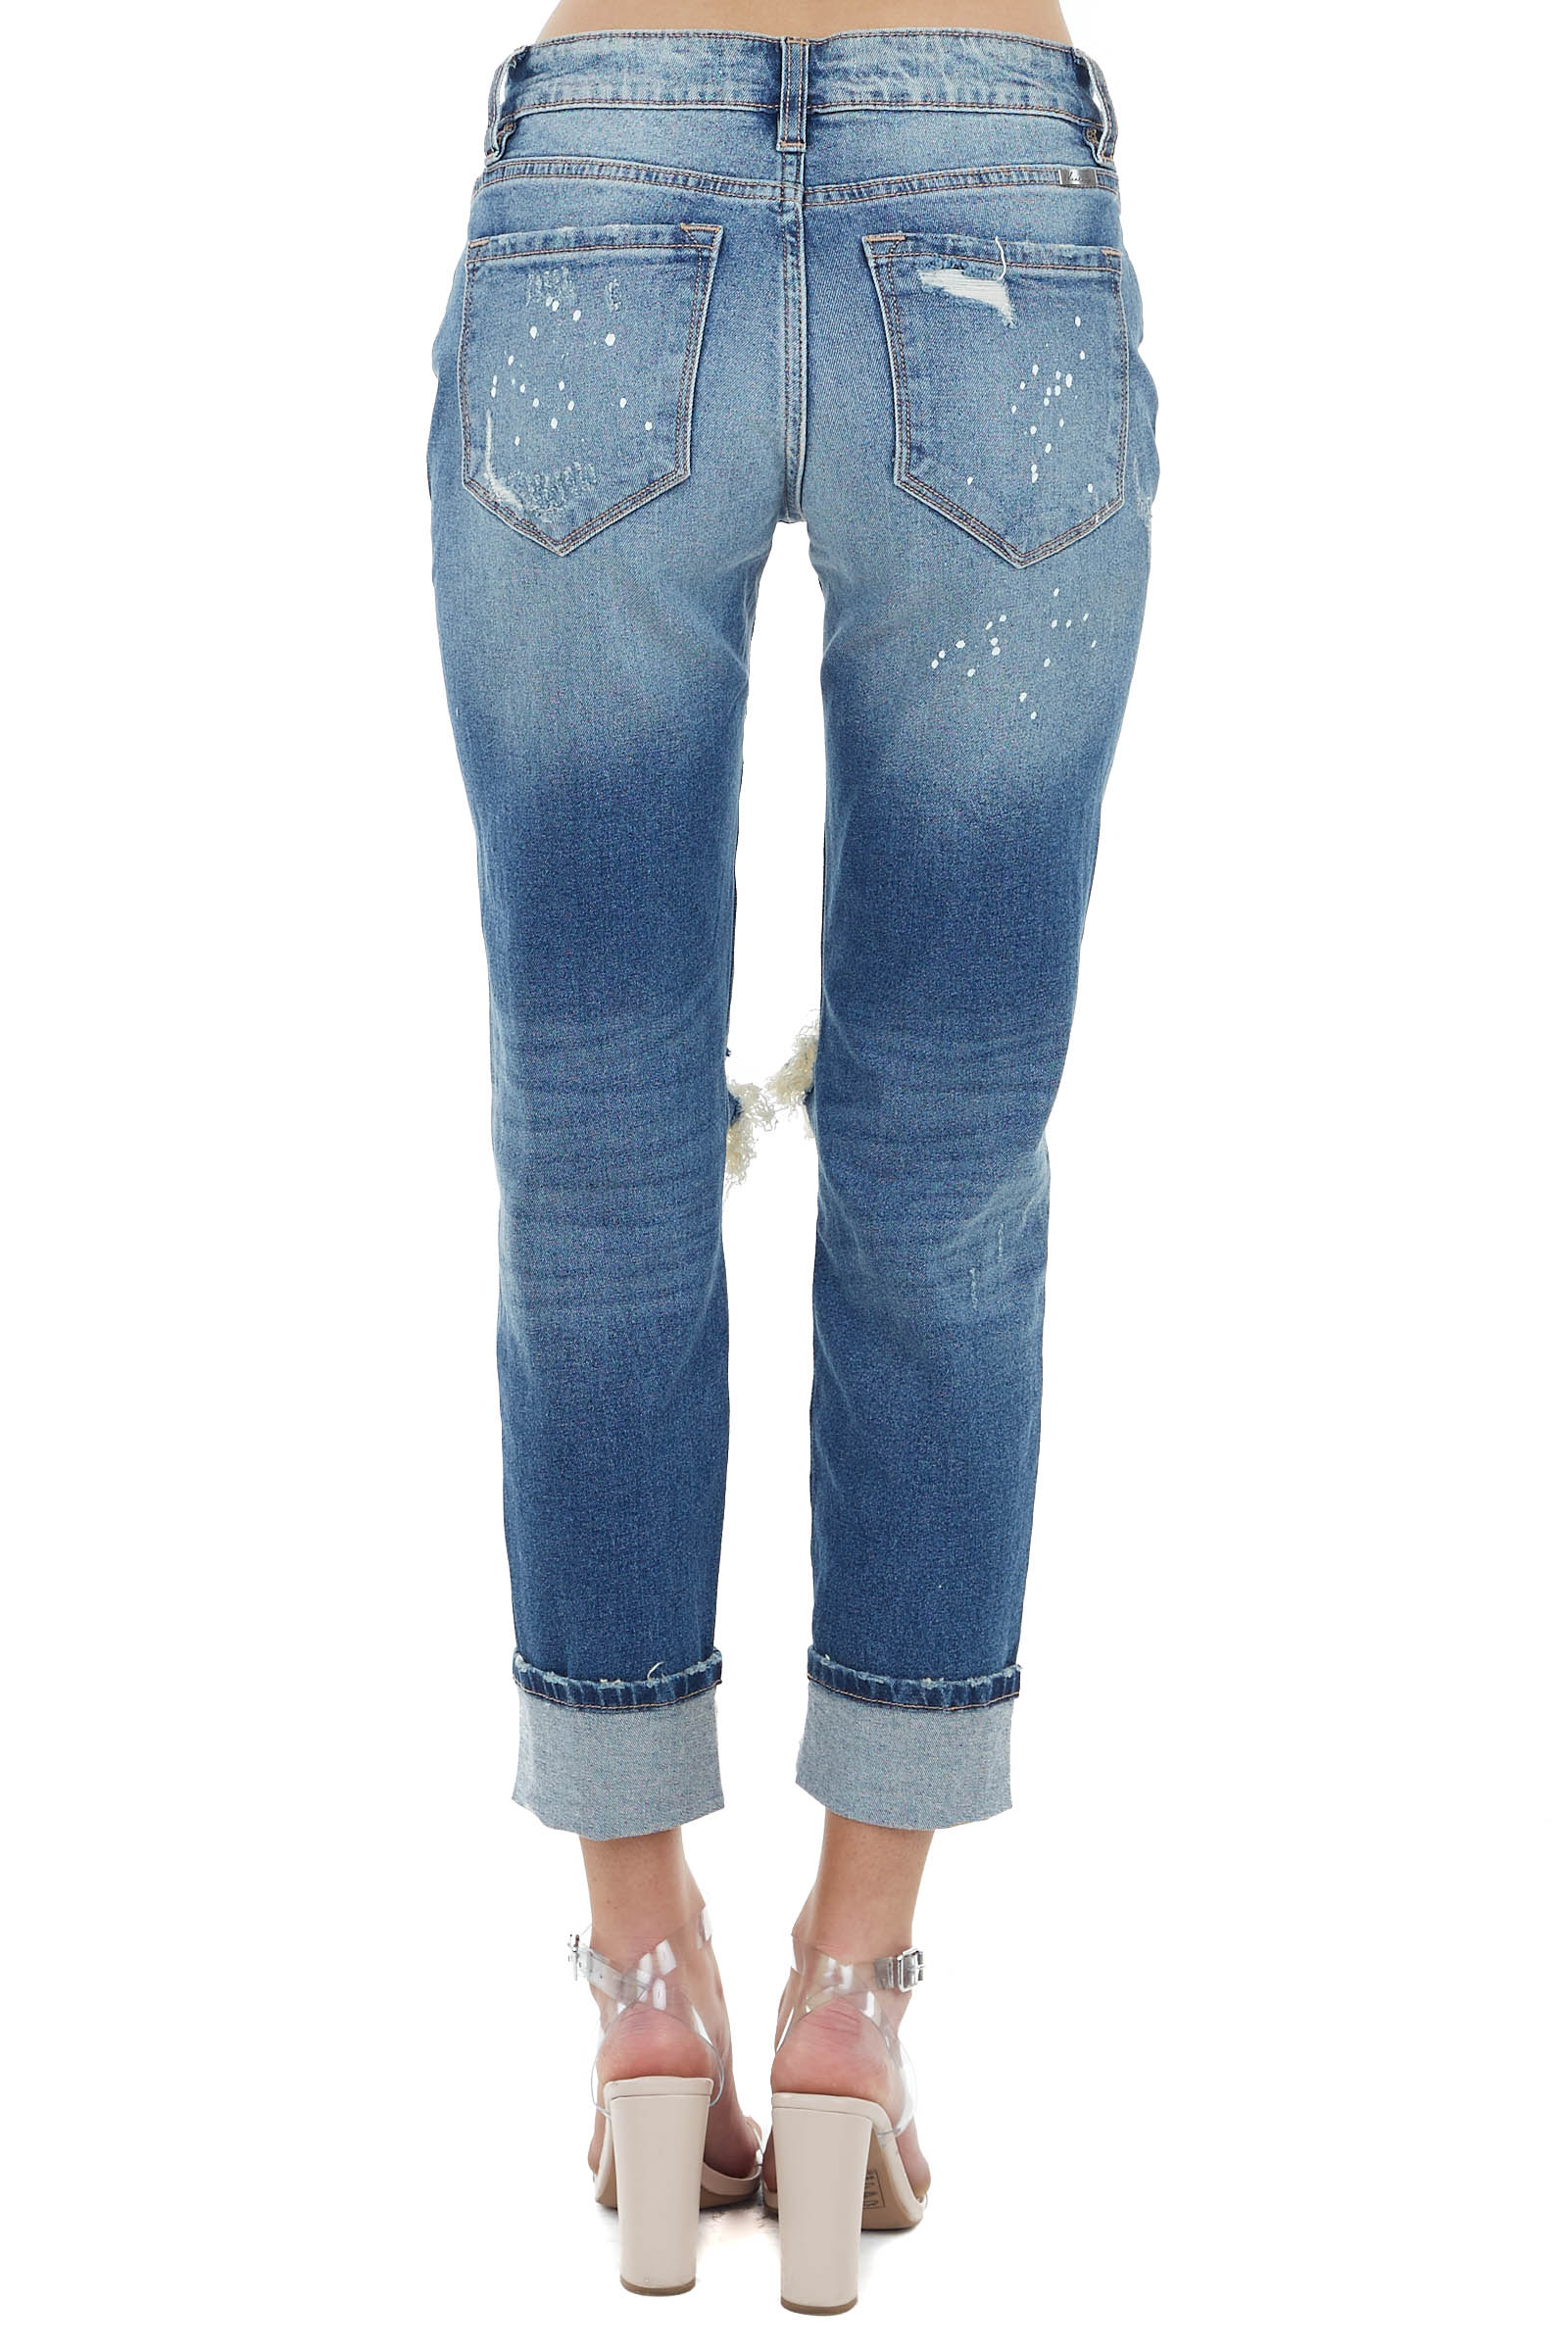 Medium Wash Distressed Jeans with Paint Splatter Details